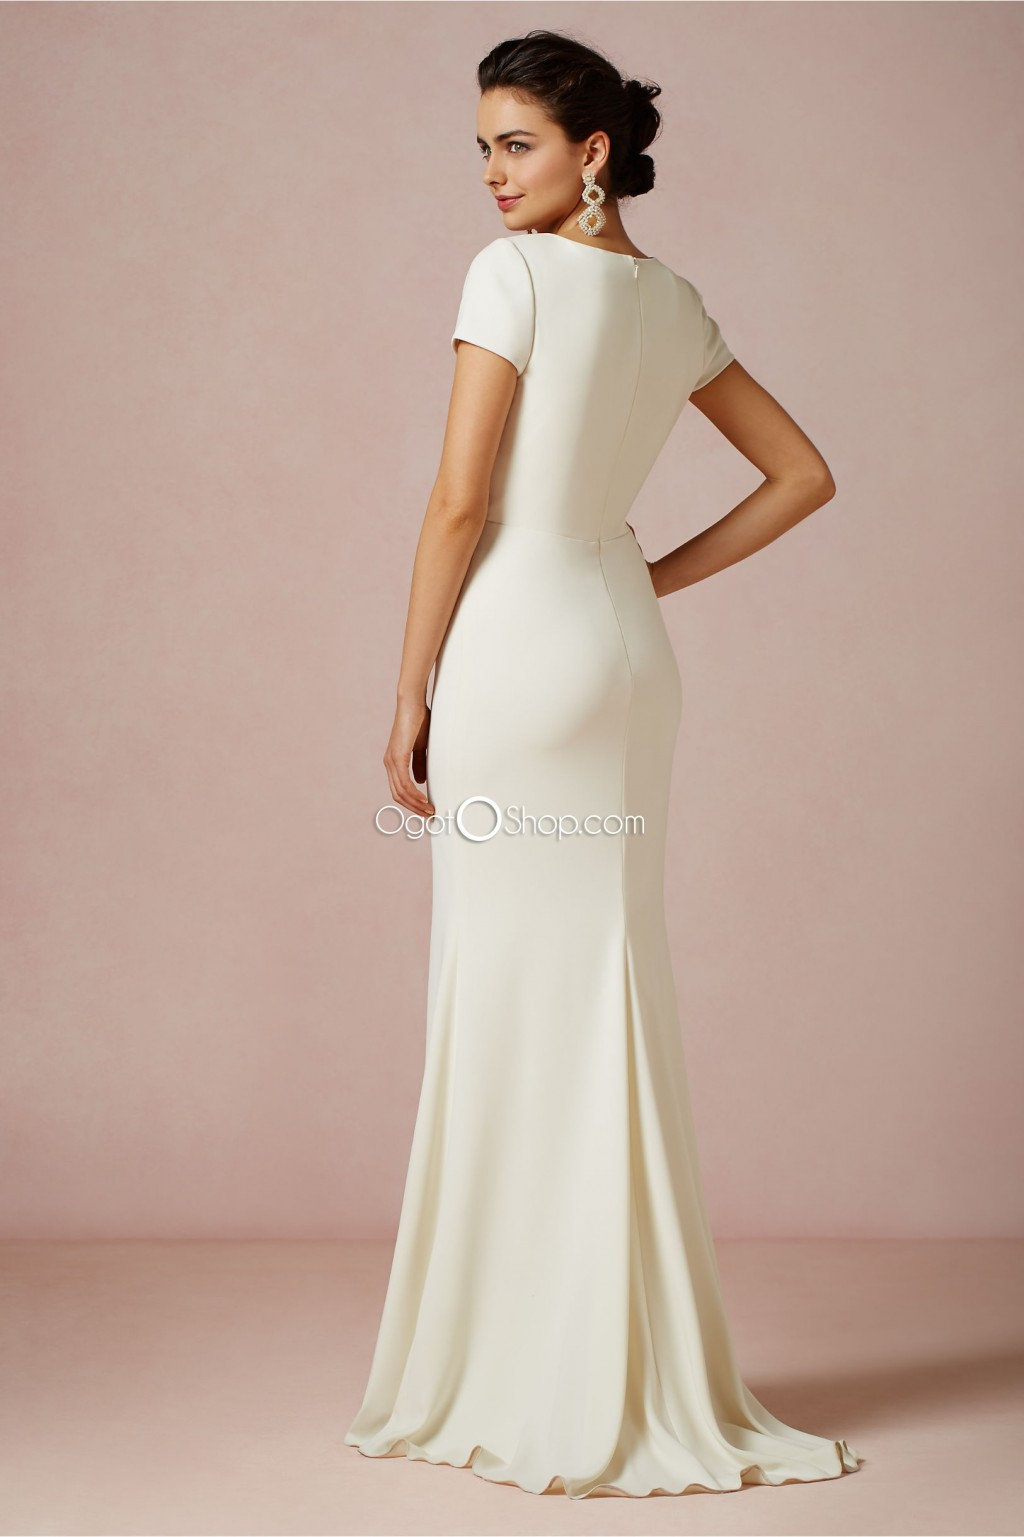 Macy 39 s homecoming dresses white discount evening dresses for Macy s dresses for weddings